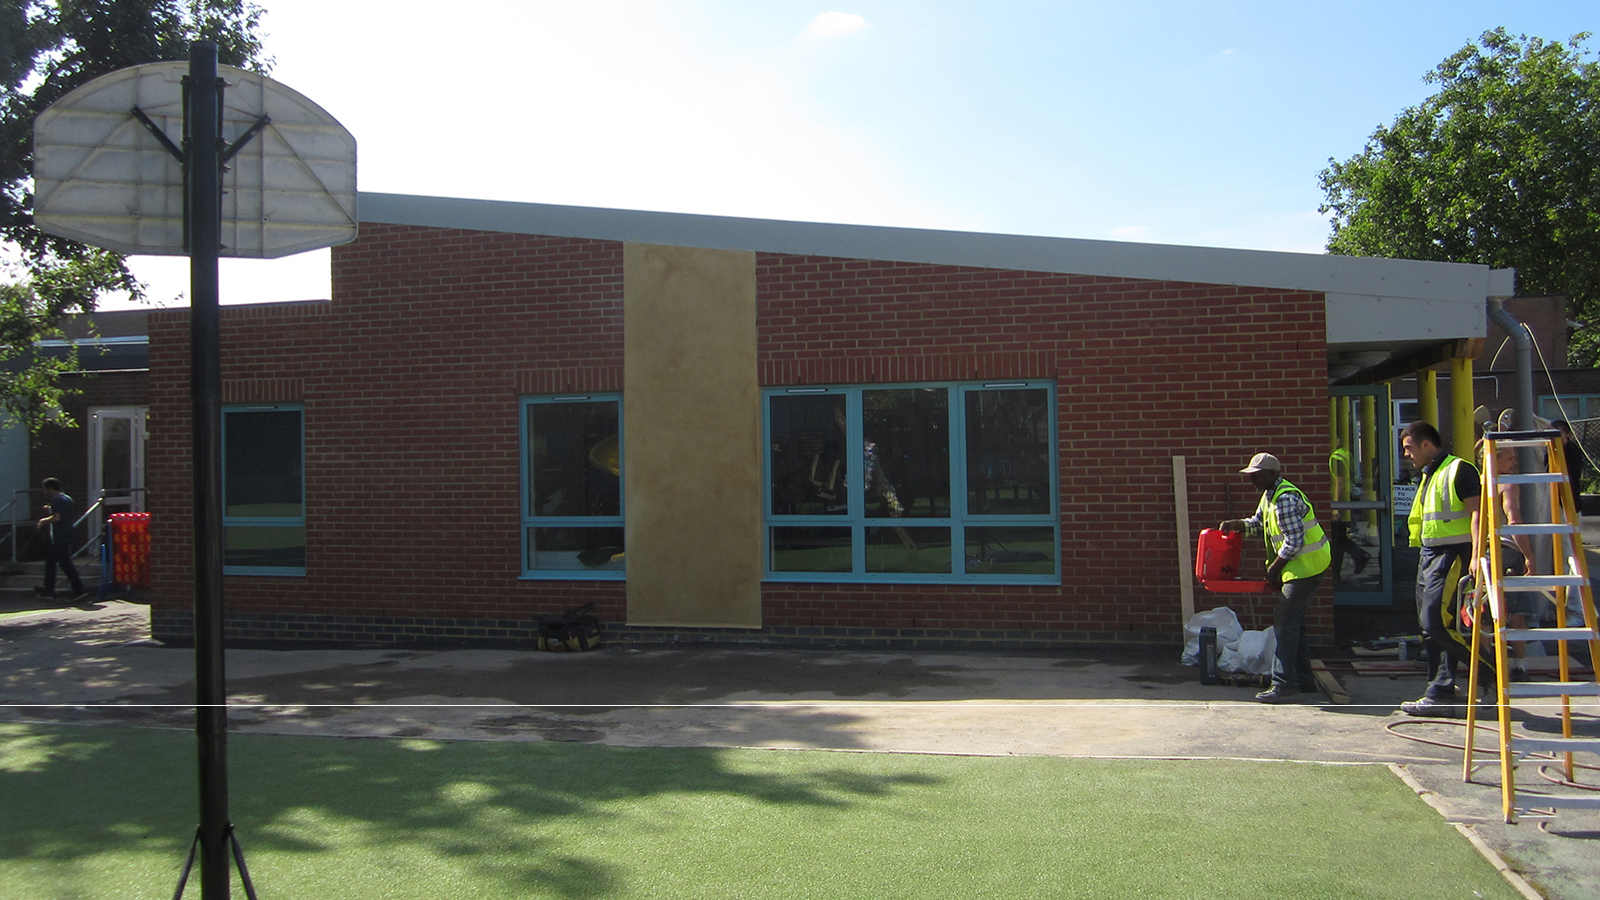 East_Sheen_School_01